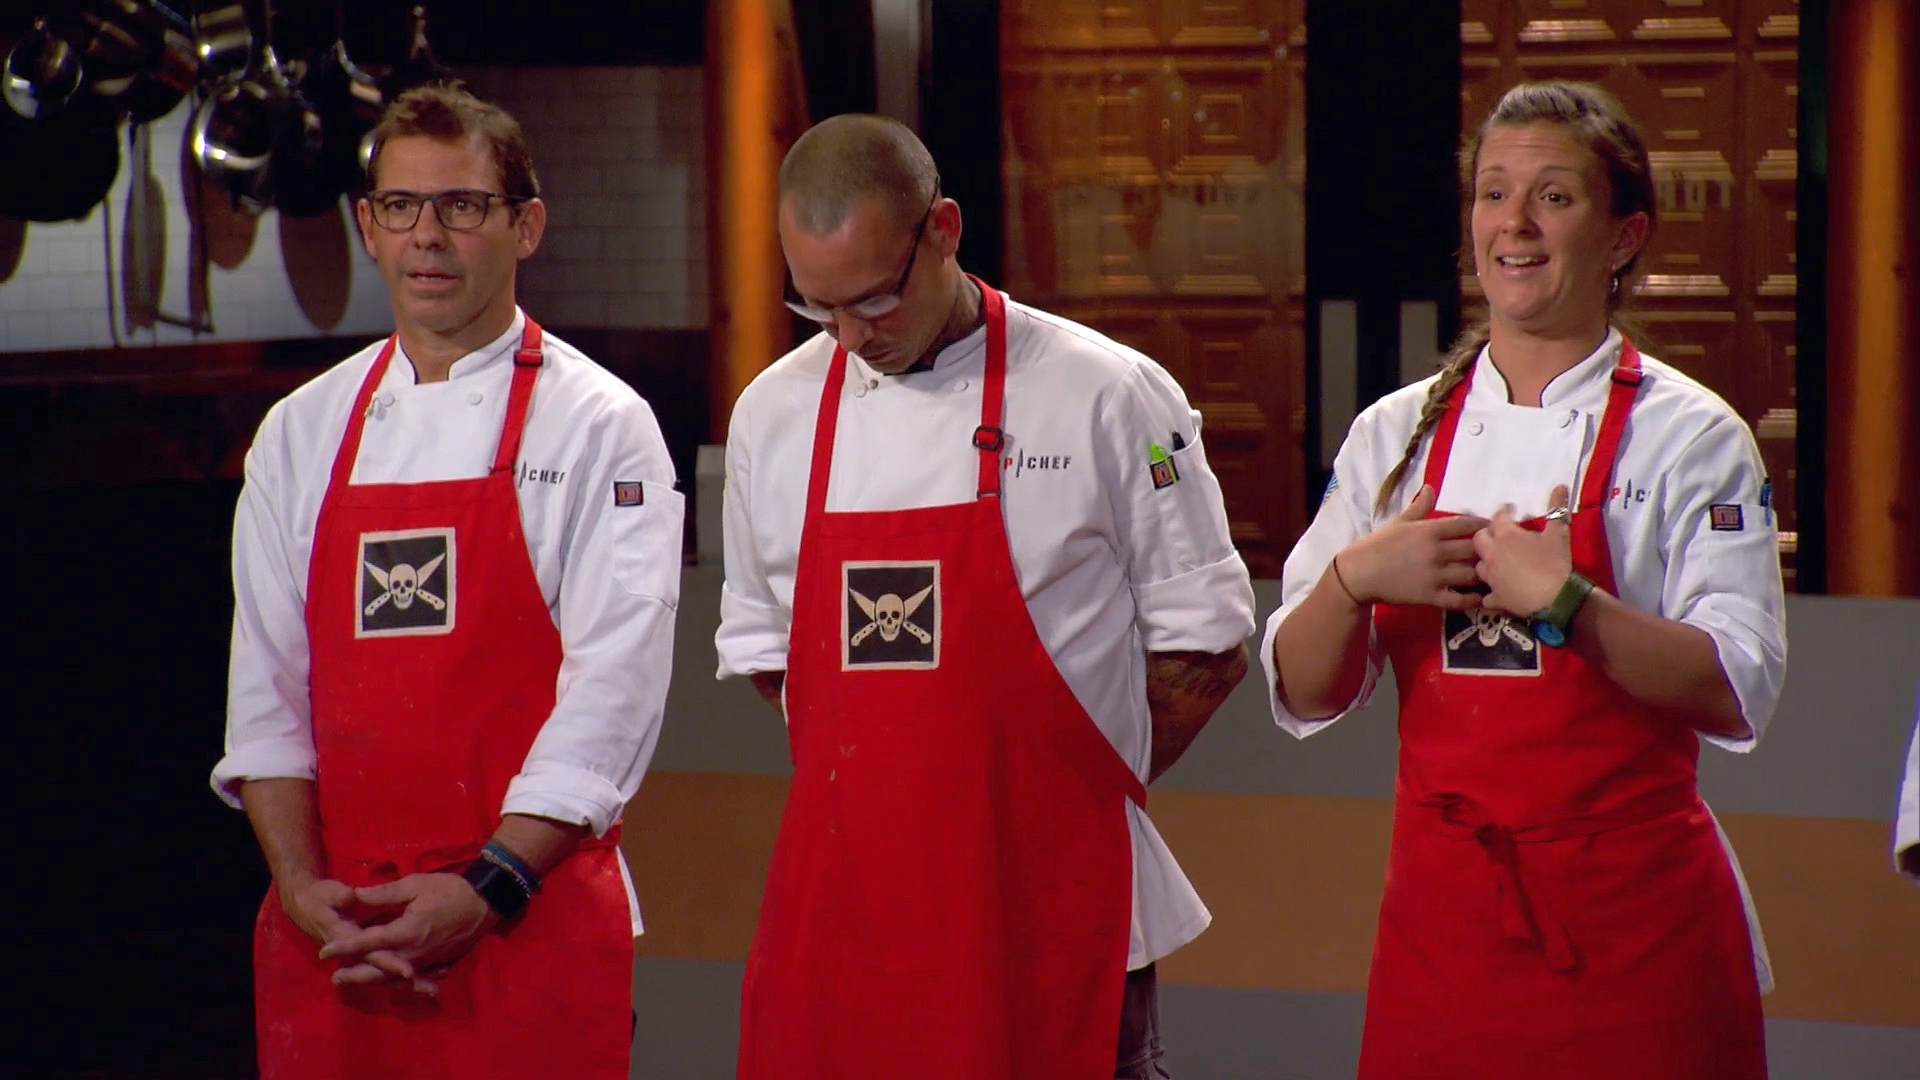 Top chef season 6 winner spoiler